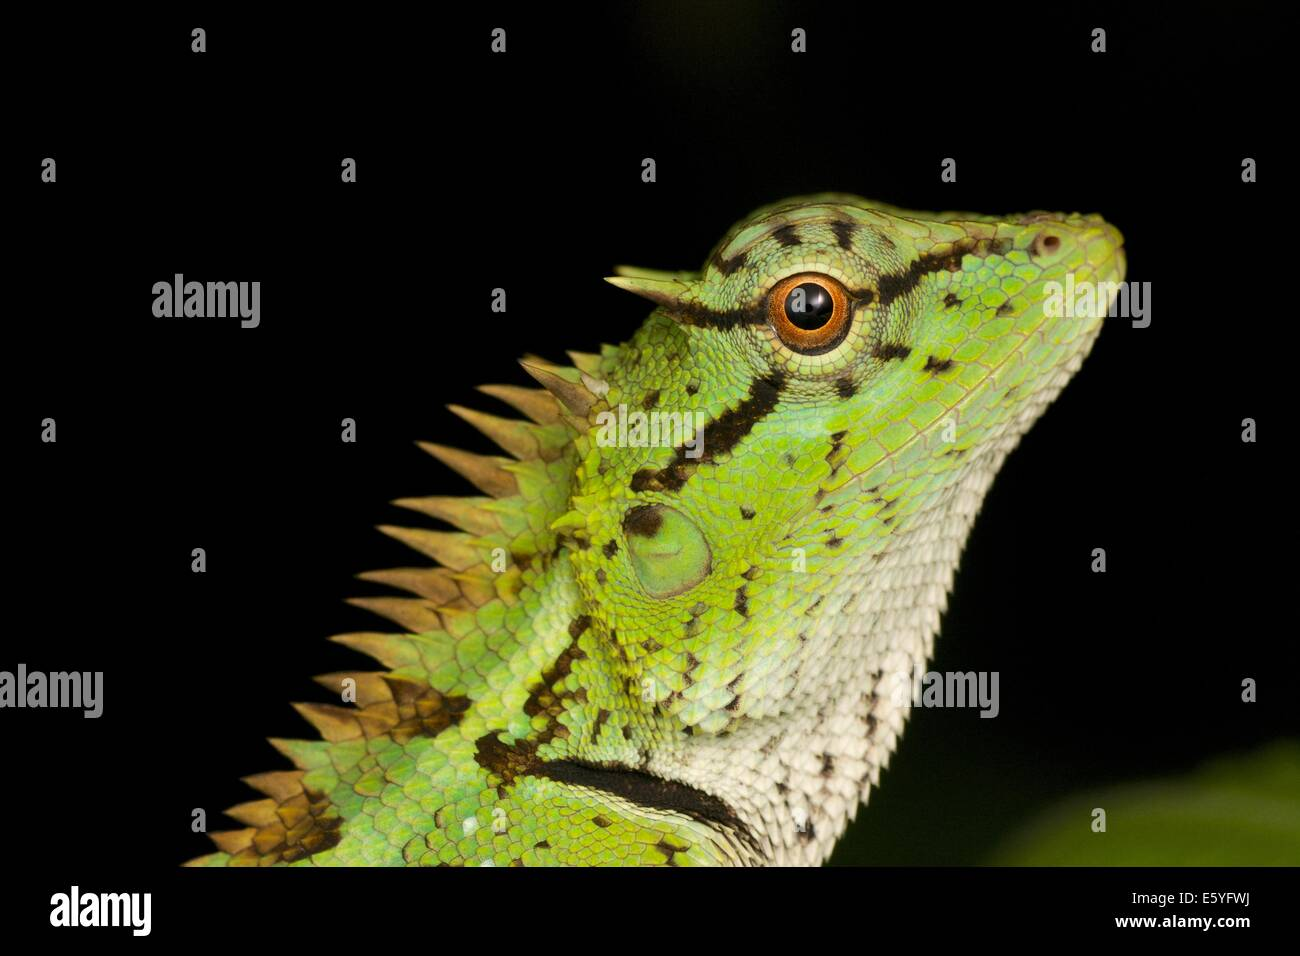 Emma Gray's forest lizard (Calotes emma), also known as the forest crested lizard, is an agamid lizard found - Stock Image